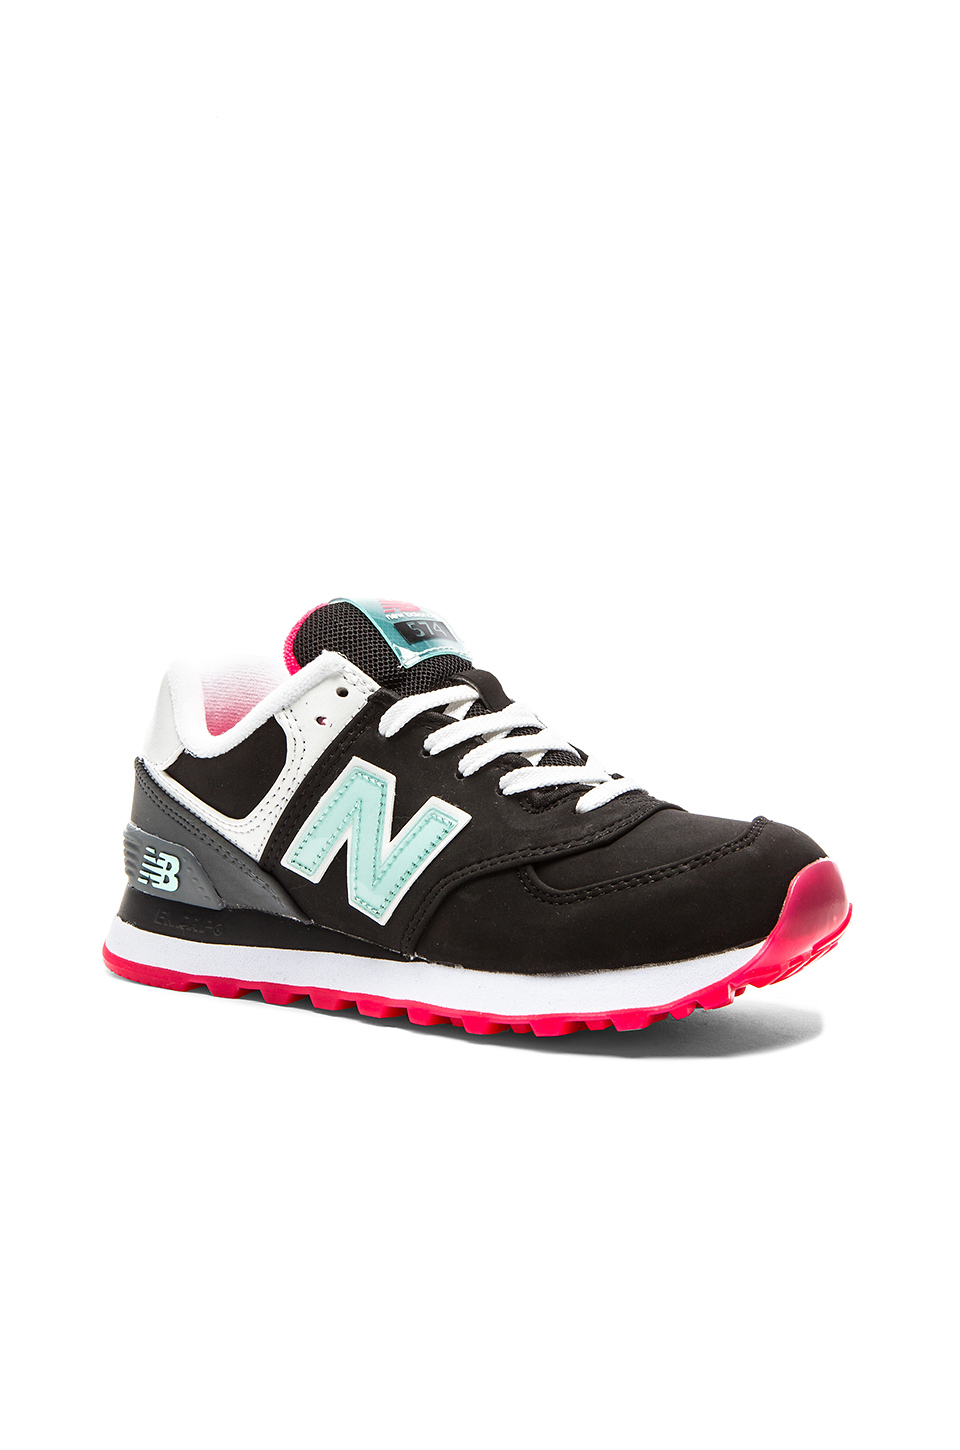 New balance 574 Glacial Collection Sneaker in Black | Lyst